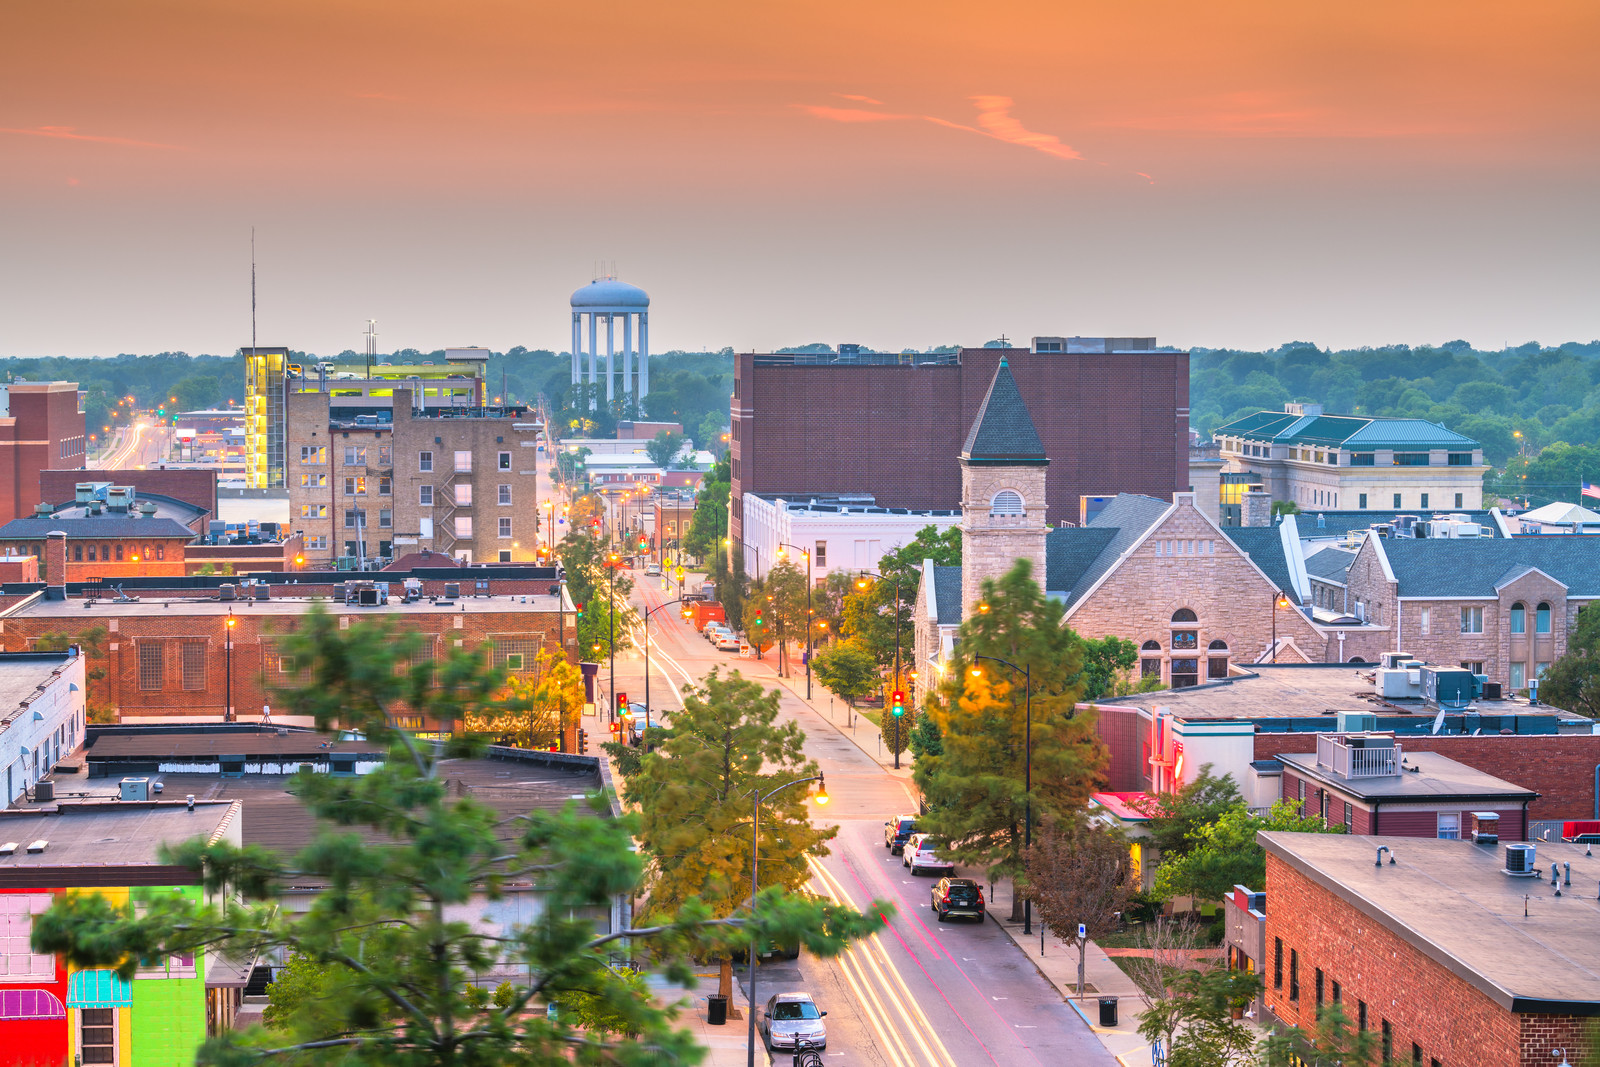 Downtown skyline Columbia Missouri with green trees in the background